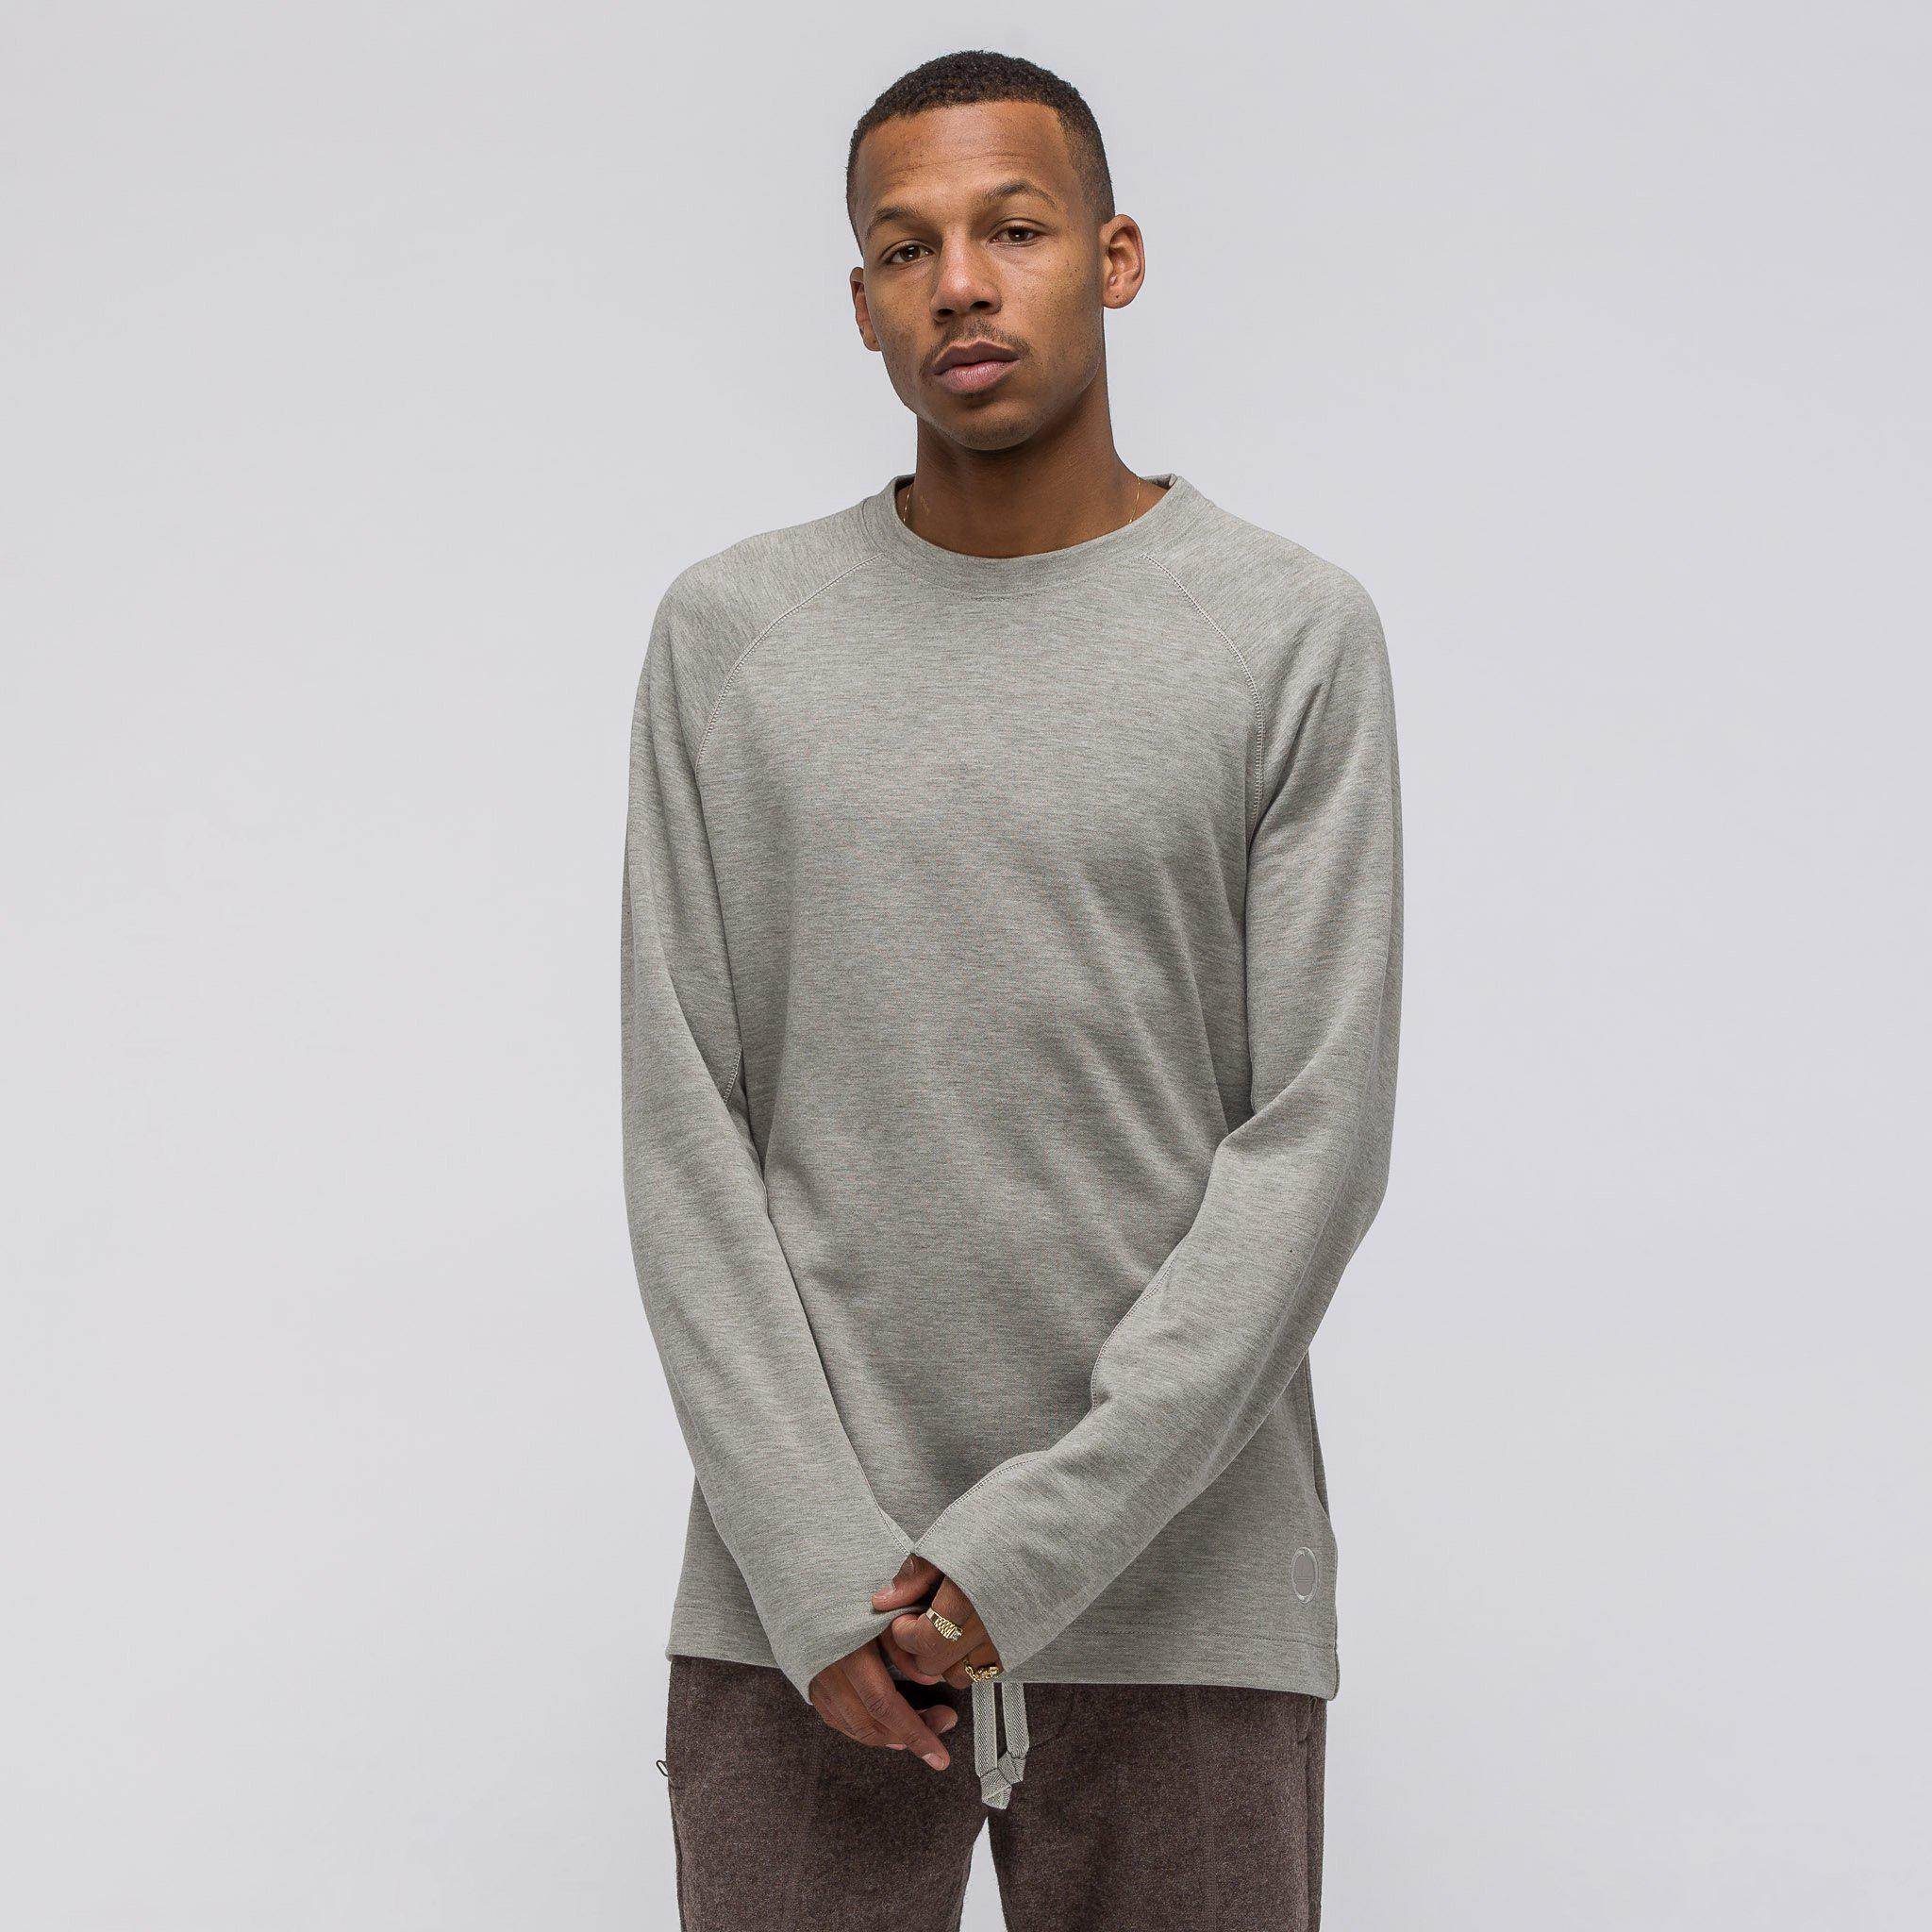 low priced 6822a dac1f Lyst - adidas X Wings+horns Long Sleeve T-shirt In Sesame in